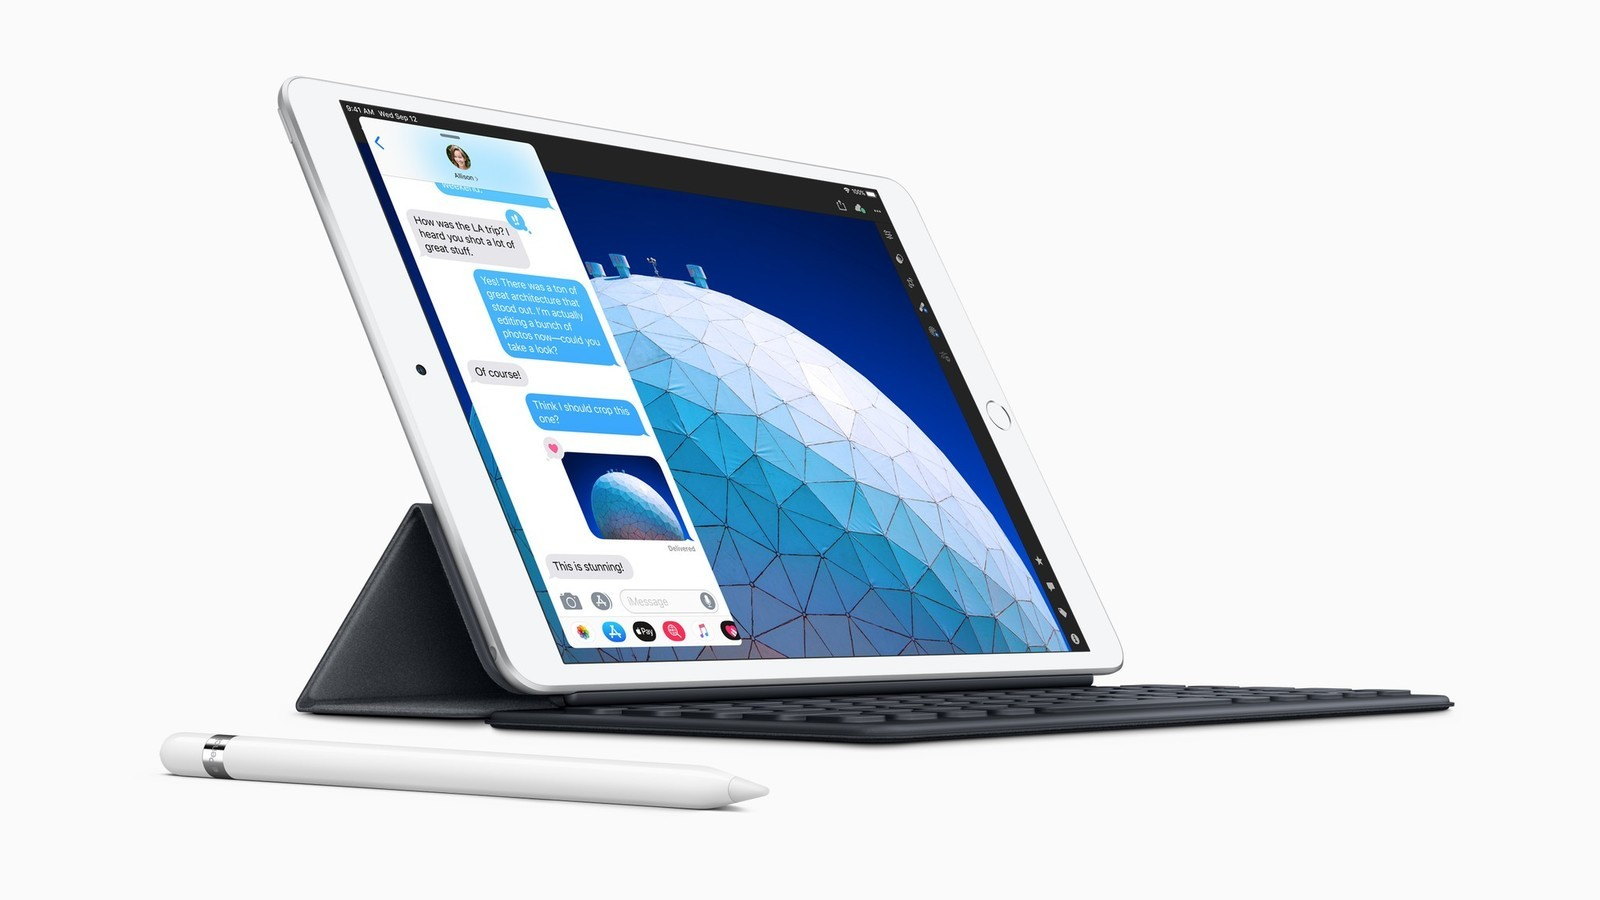 iPad Air (2019) wiht Apple Pencil and Smart Keyboard Case